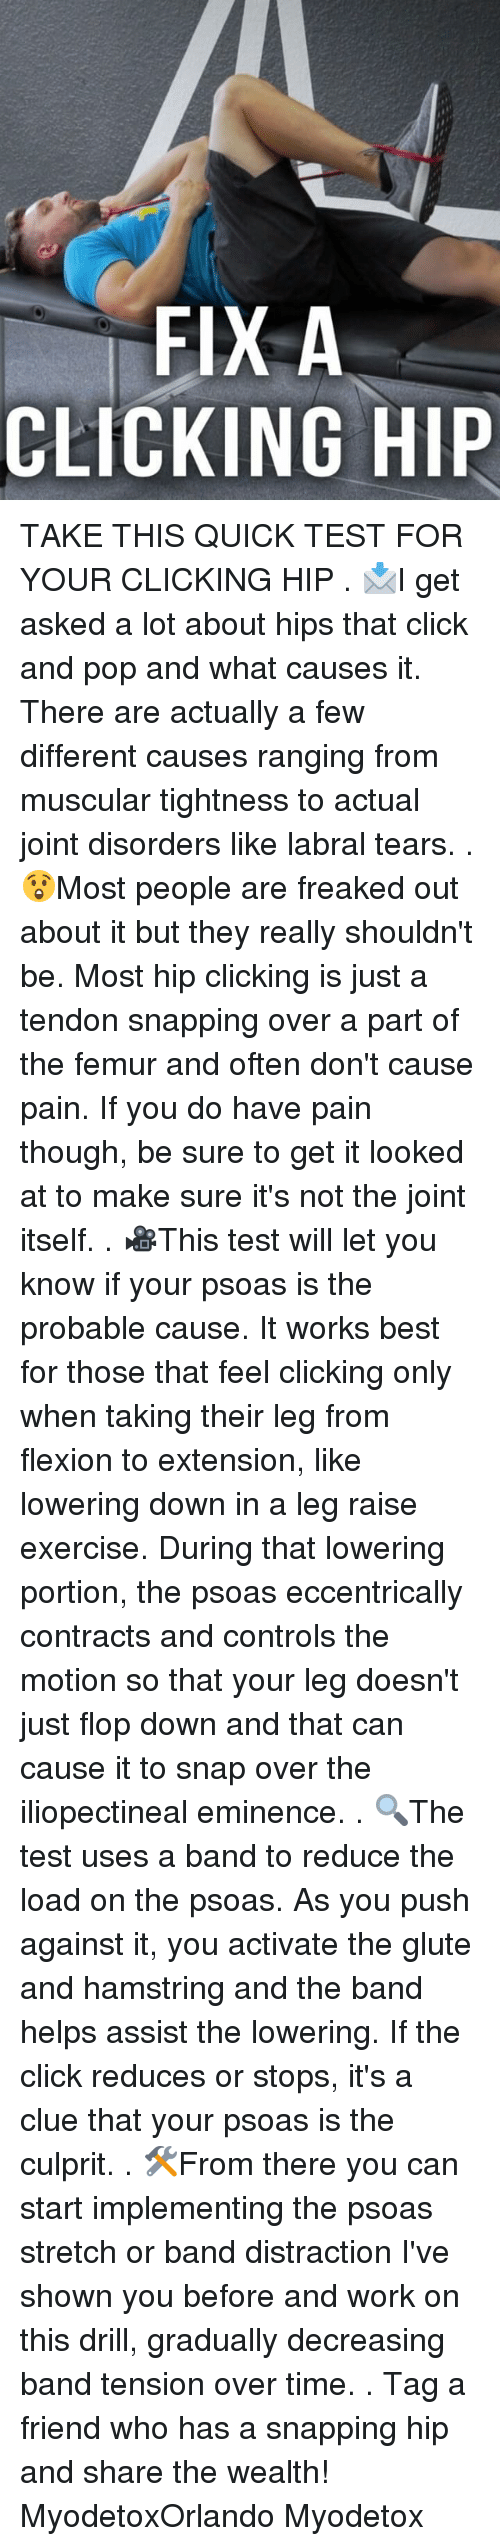 Click, Memes, and Pop: FIX A  CLICKING HIP TAKE THIS QUICK TEST FOR YOUR CLICKING HIP . 📩I get asked a lot about hips that click and pop and what causes it. There are actually a few different causes ranging from muscular tightness to actual joint disorders like labral tears. . 😲Most people are freaked out about it but they really shouldn't be. Most hip clicking is just a tendon snapping over a part of the femur and often don't cause pain. If you do have pain though, be sure to get it looked at to make sure it's not the joint itself. . 🎥This test will let you know if your psoas is the probable cause. It works best for those that feel clicking only when taking their leg from flexion to extension, like lowering down in a leg raise exercise. During that lowering portion, the psoas eccentrically contracts and controls the motion so that your leg doesn't just flop down and that can cause it to snap over the iliopectineal eminence. . 🔍The test uses a band to reduce the load on the psoas. As you push against it, you activate the glute and hamstring and the band helps assist the lowering. If the click reduces or stops, it's a clue that your psoas is the culprit. . 🛠From there you can start implementing the psoas stretch or band distraction I've shown you before and work on this drill, gradually decreasing band tension over time. . Tag a friend who has a snapping hip and share the wealth! MyodetoxOrlando Myodetox